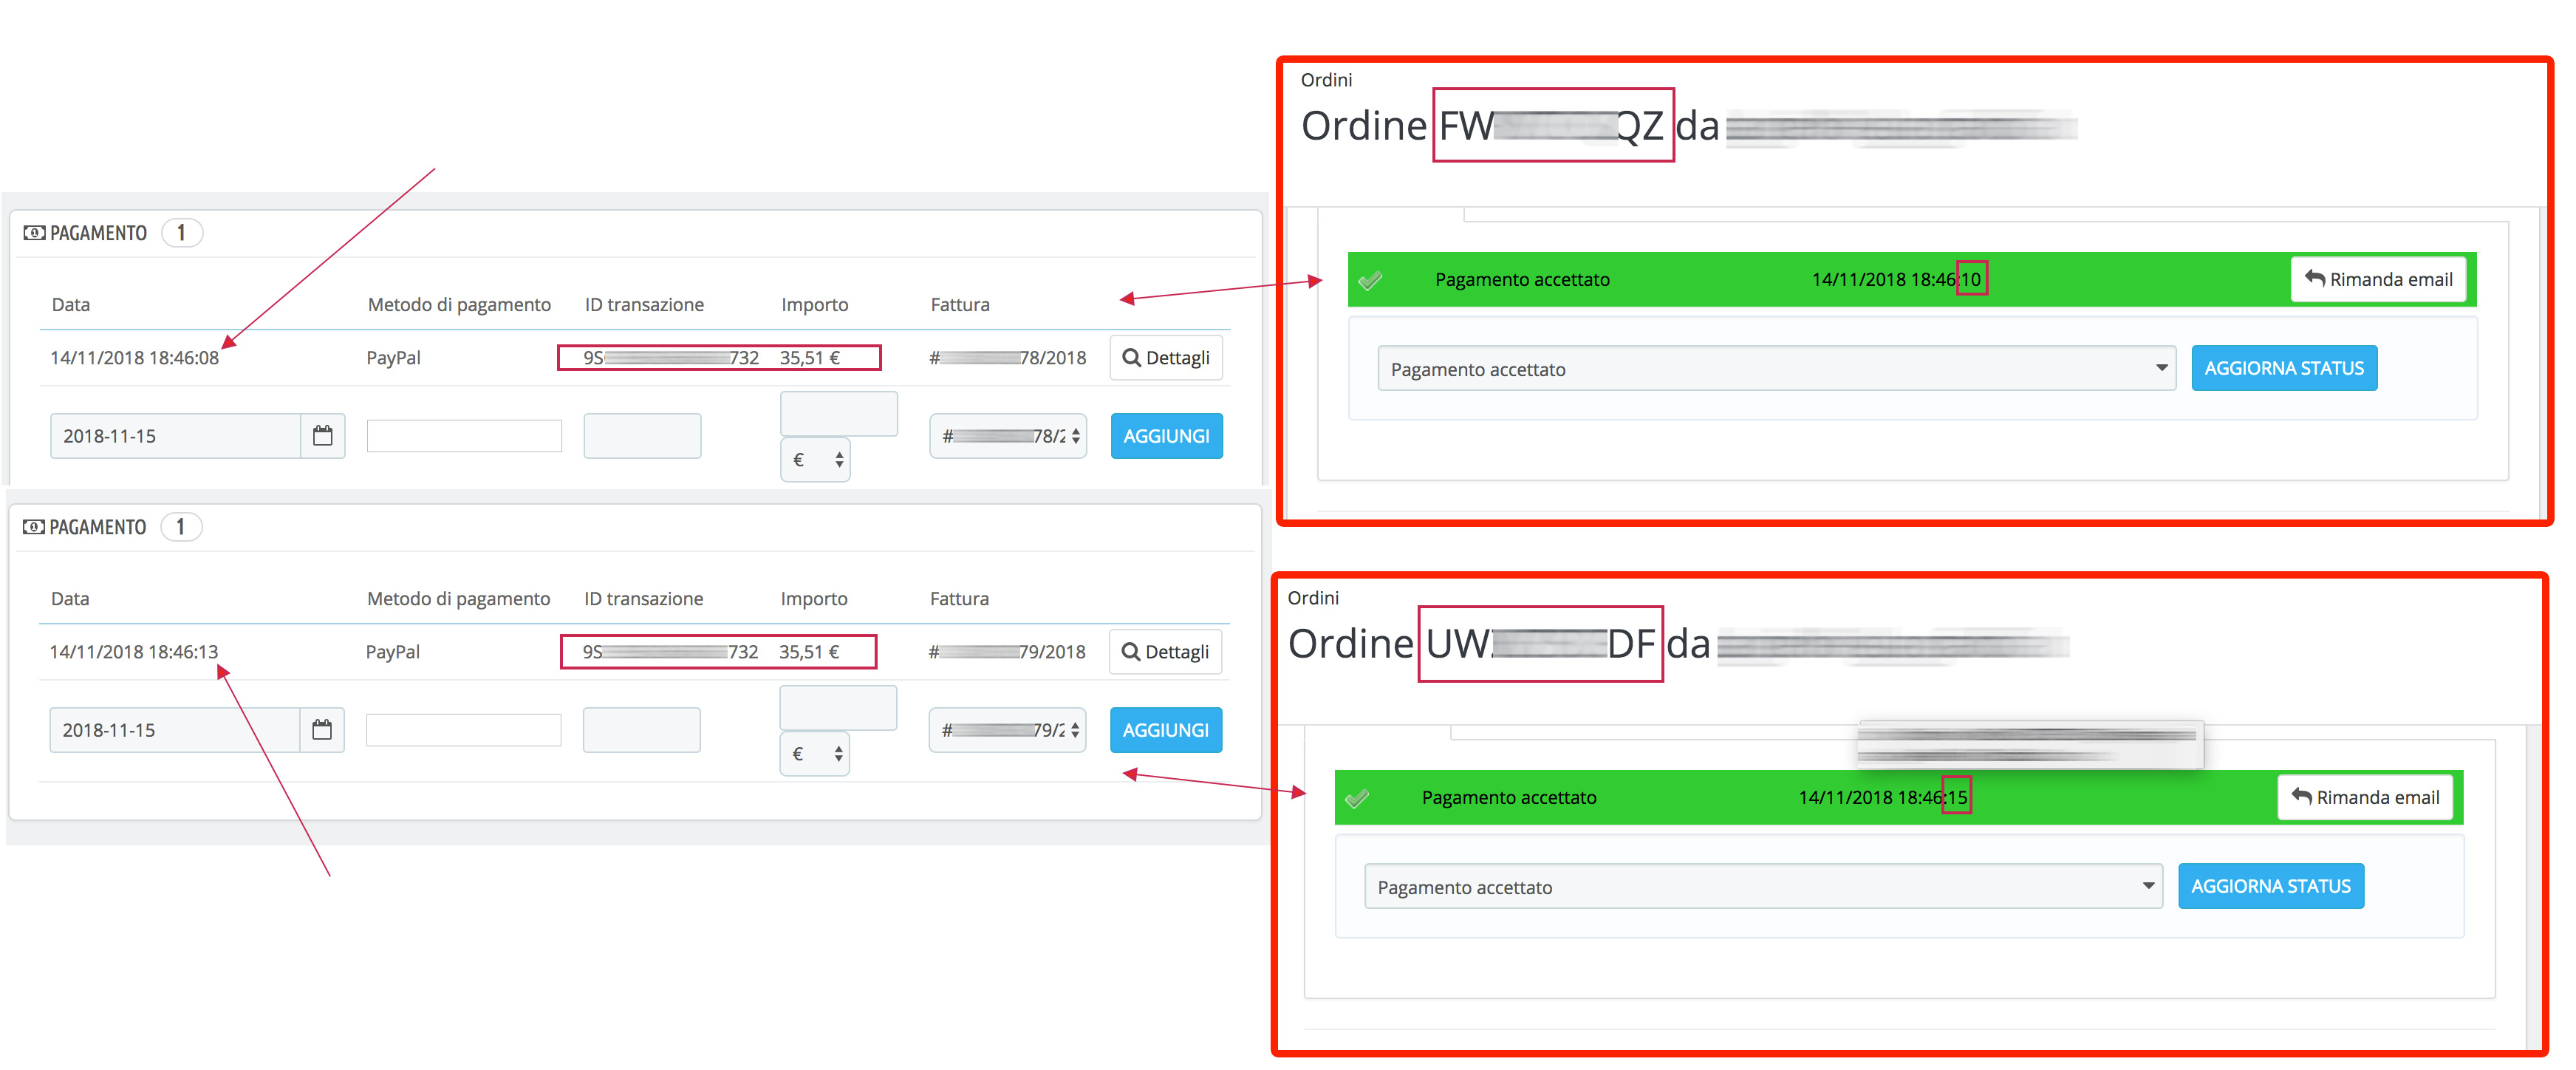 Double order with the same transaction ID (paypal payment